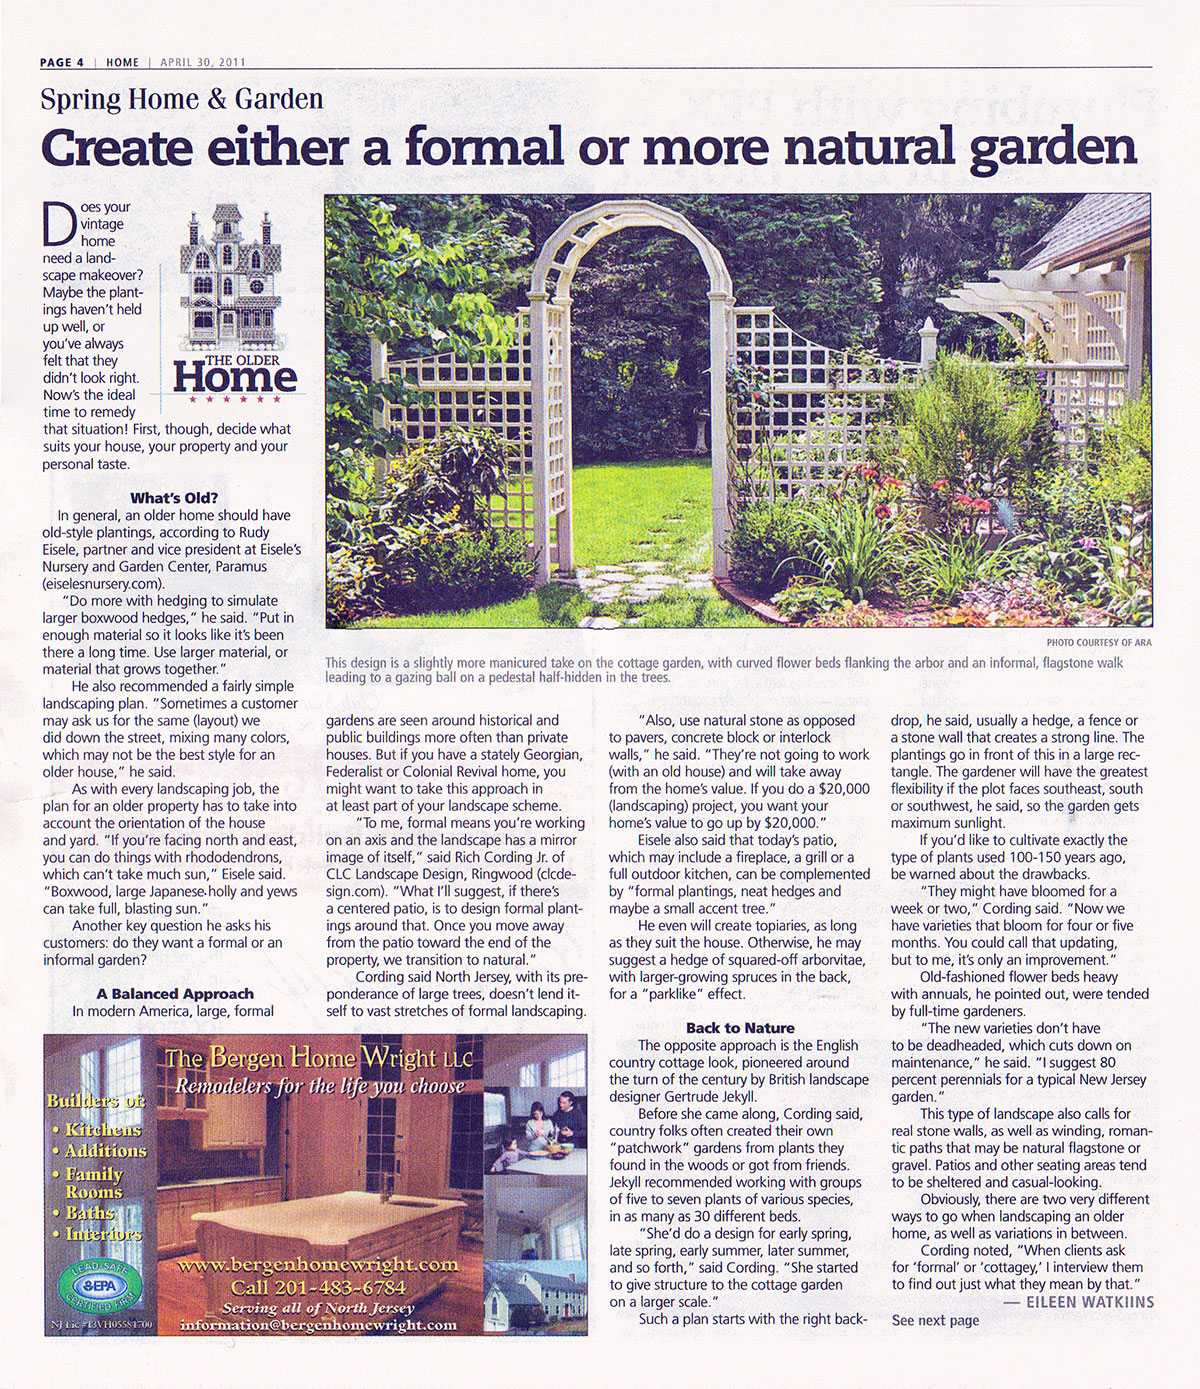 The Record - Formal or Semi-Formal Garden (page 1)